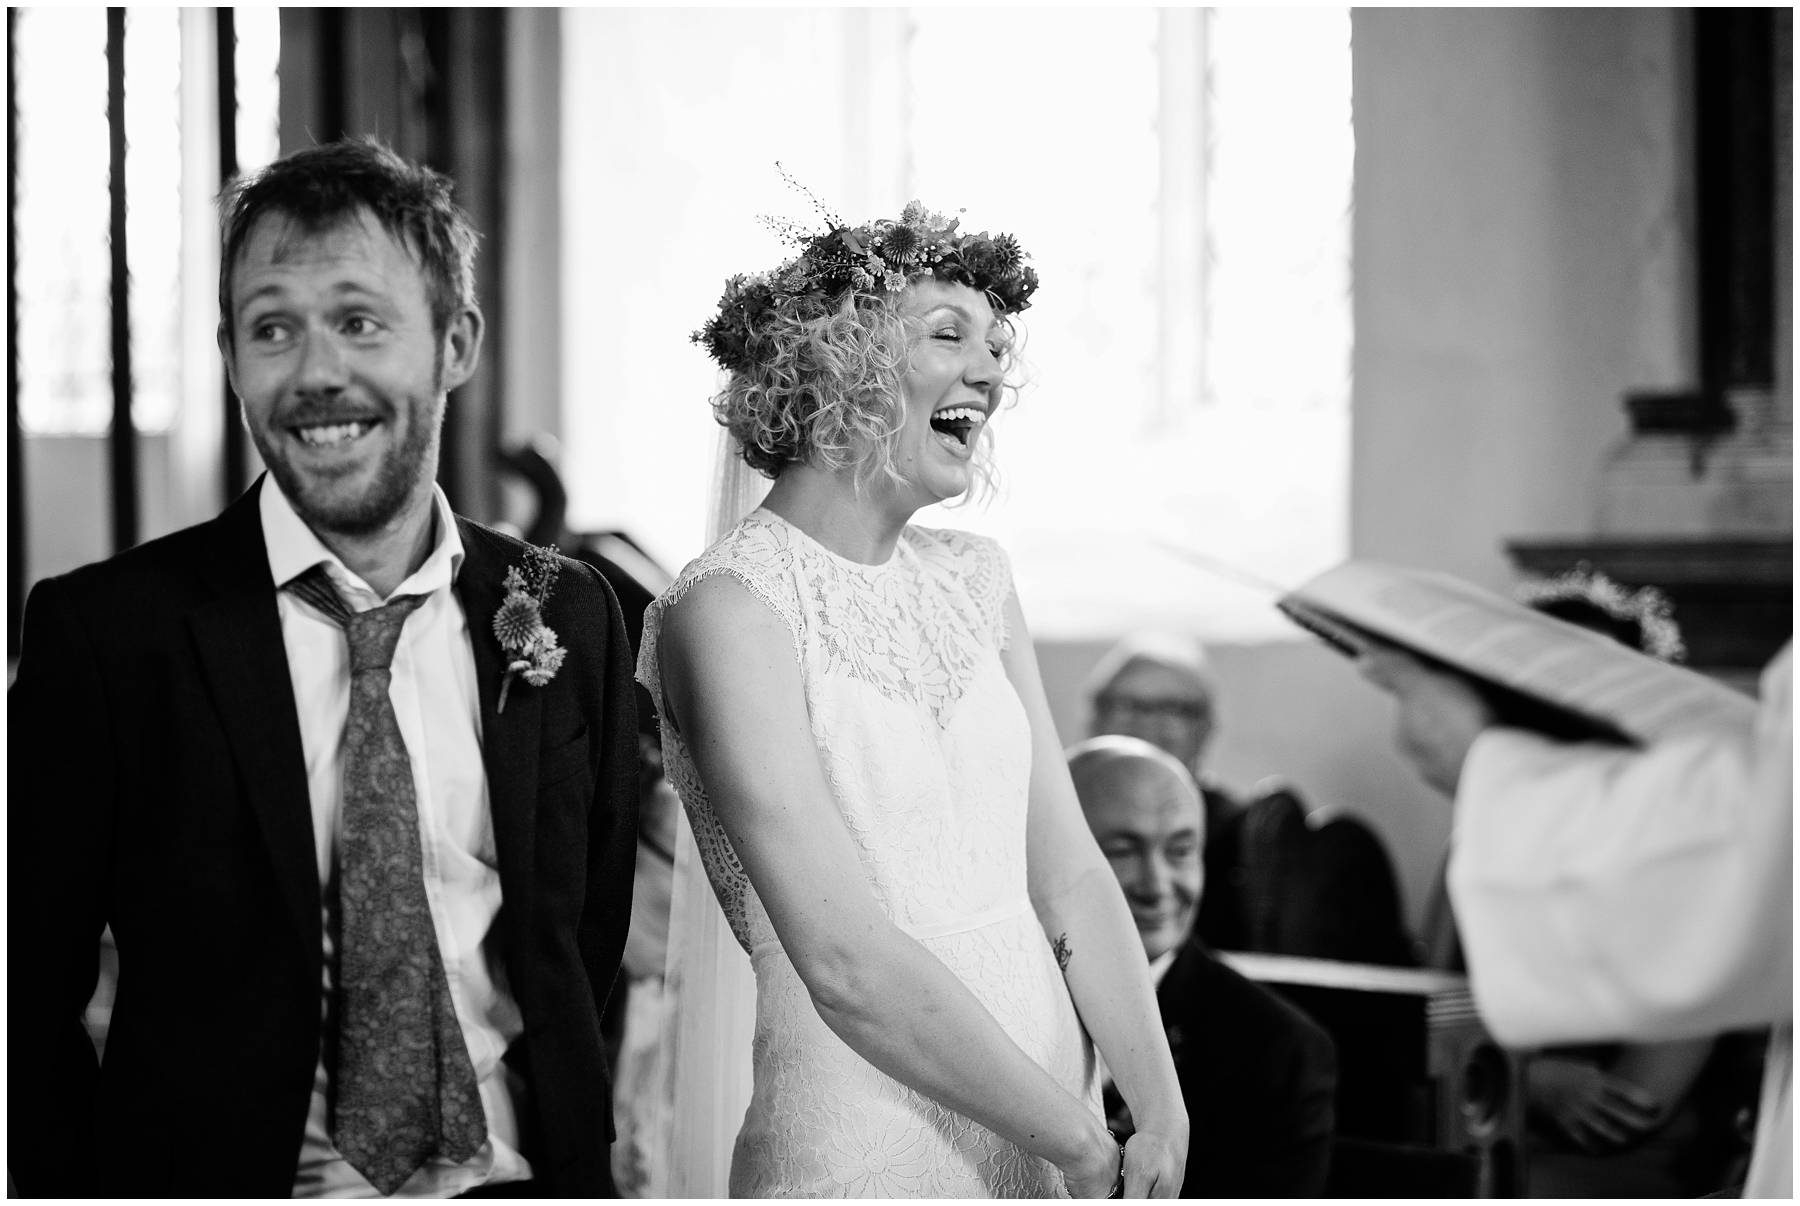 Church Wedding in Coggeshall